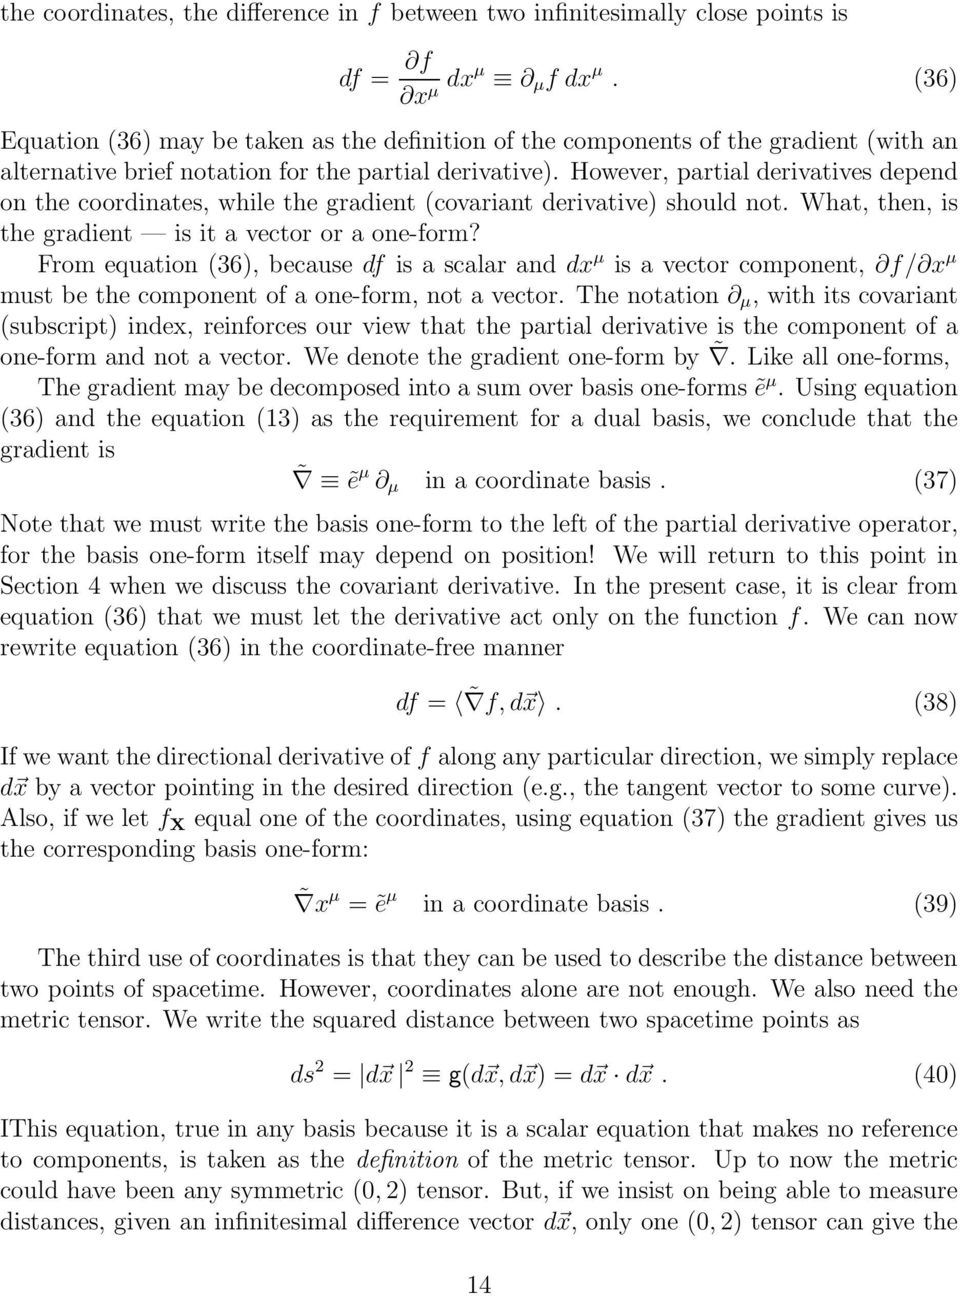 However, partial derivatives depend on the coordinates, while the gradient (covariant derivative) should not. What, then, is the gradient is it a vector or a one-form?